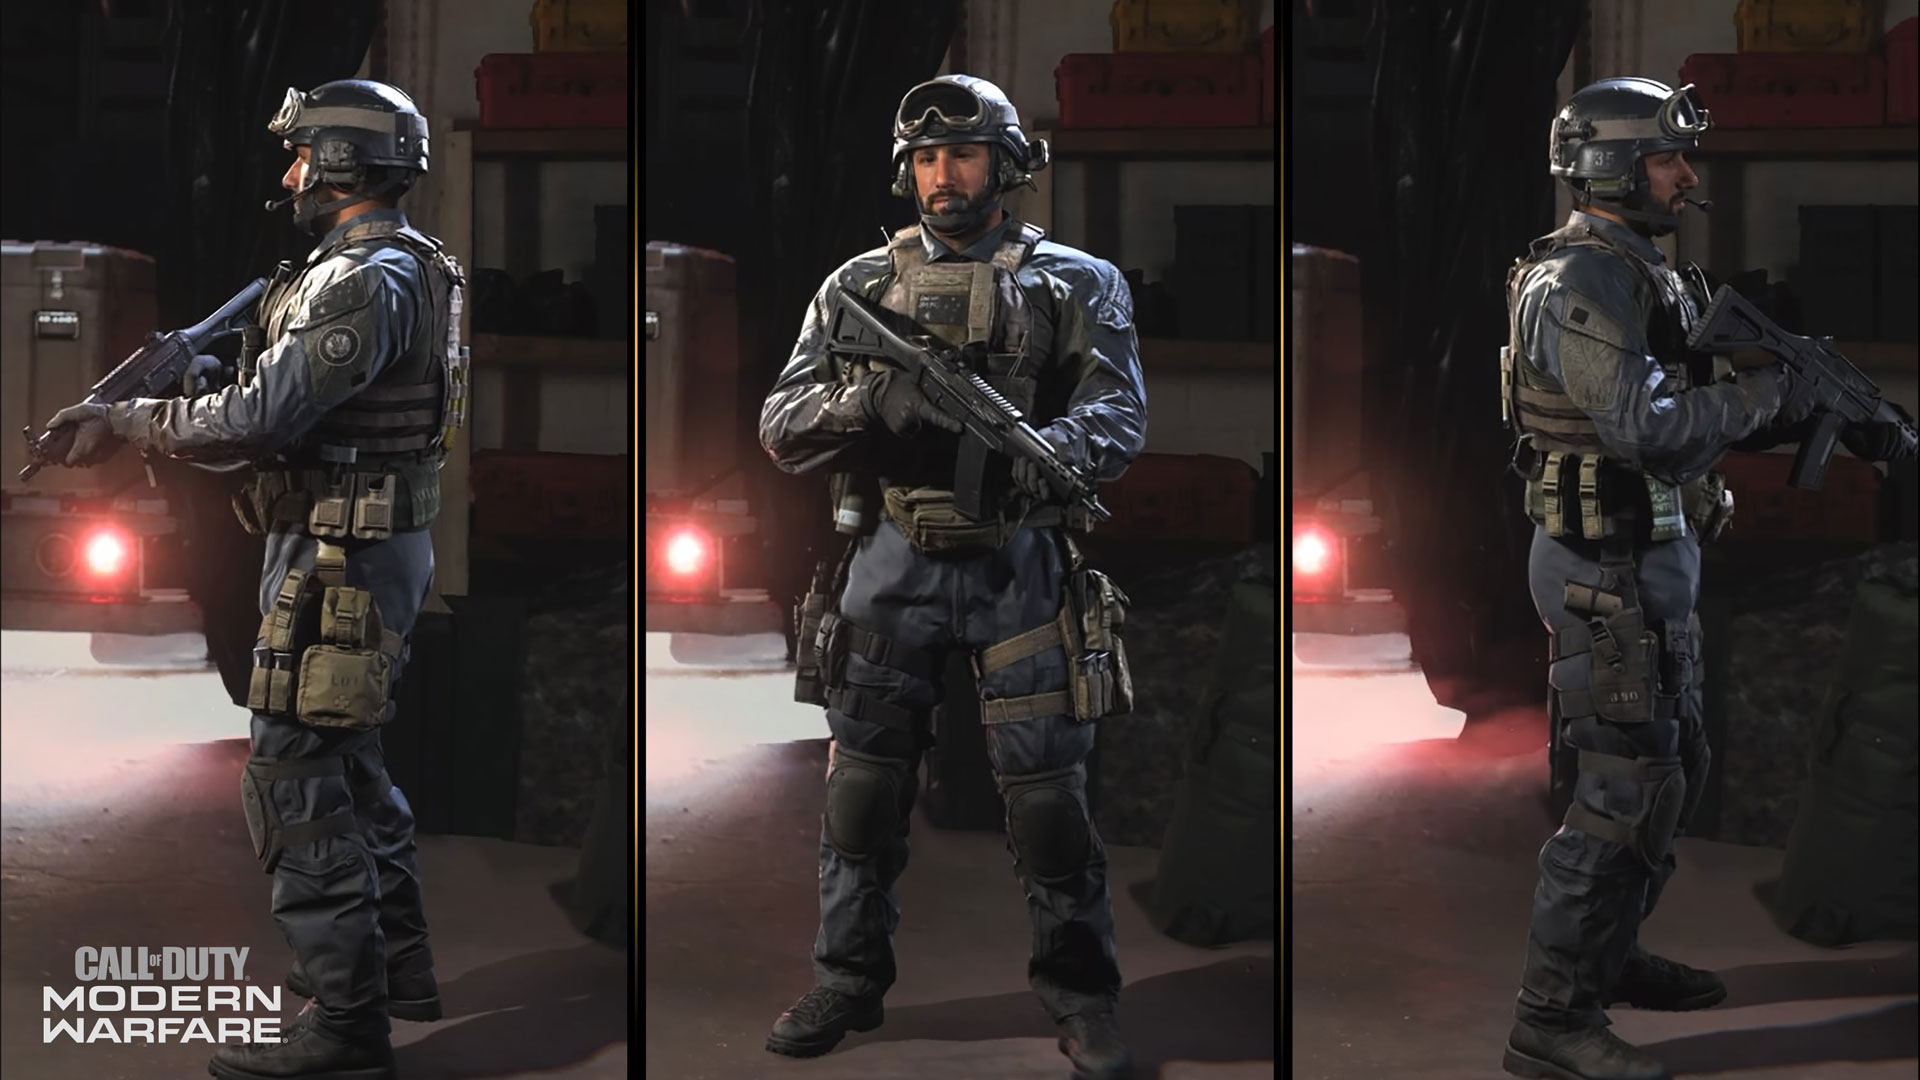 Ghost joins the Coalition Operators of Call of Duty®: Modern Warfare® - Image 3